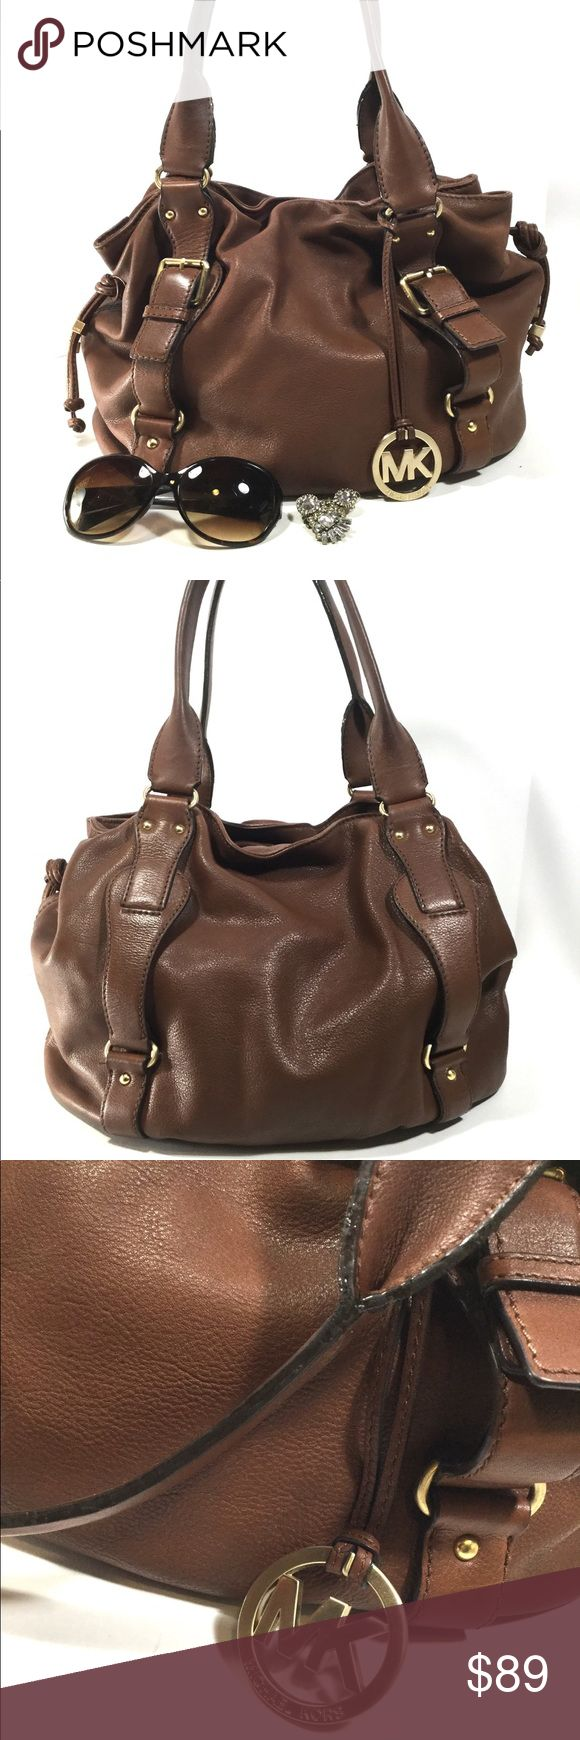 Michael Kors Drawstring Brown Handbag Beautiful leather Michael Kors bag. Shows minor wear on the outside. Few light spots on bottom. Edging on handle shows wear but isn't cracking and it still functional. Interior is in great condition. Michael Kors Bags Satchels